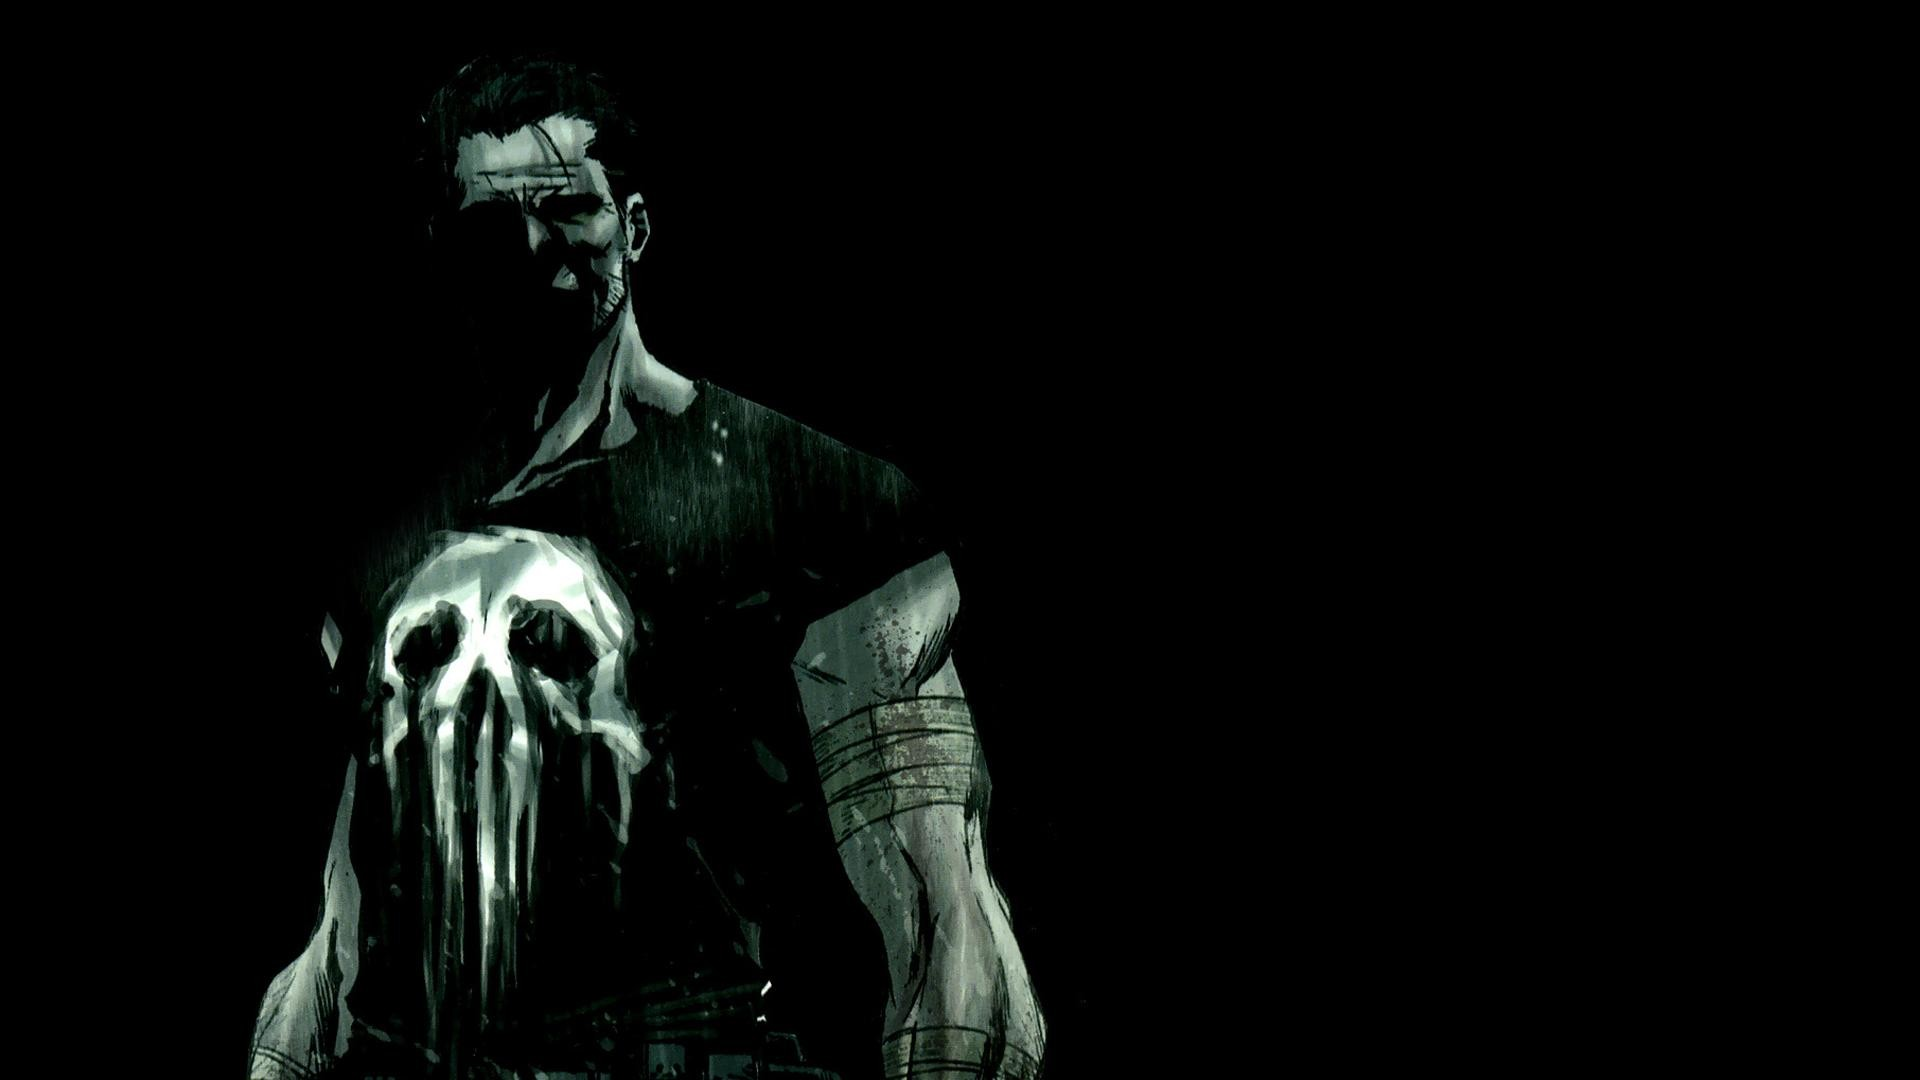 1920x1080 The Punisher Wallpapers - Wallpaper Cave